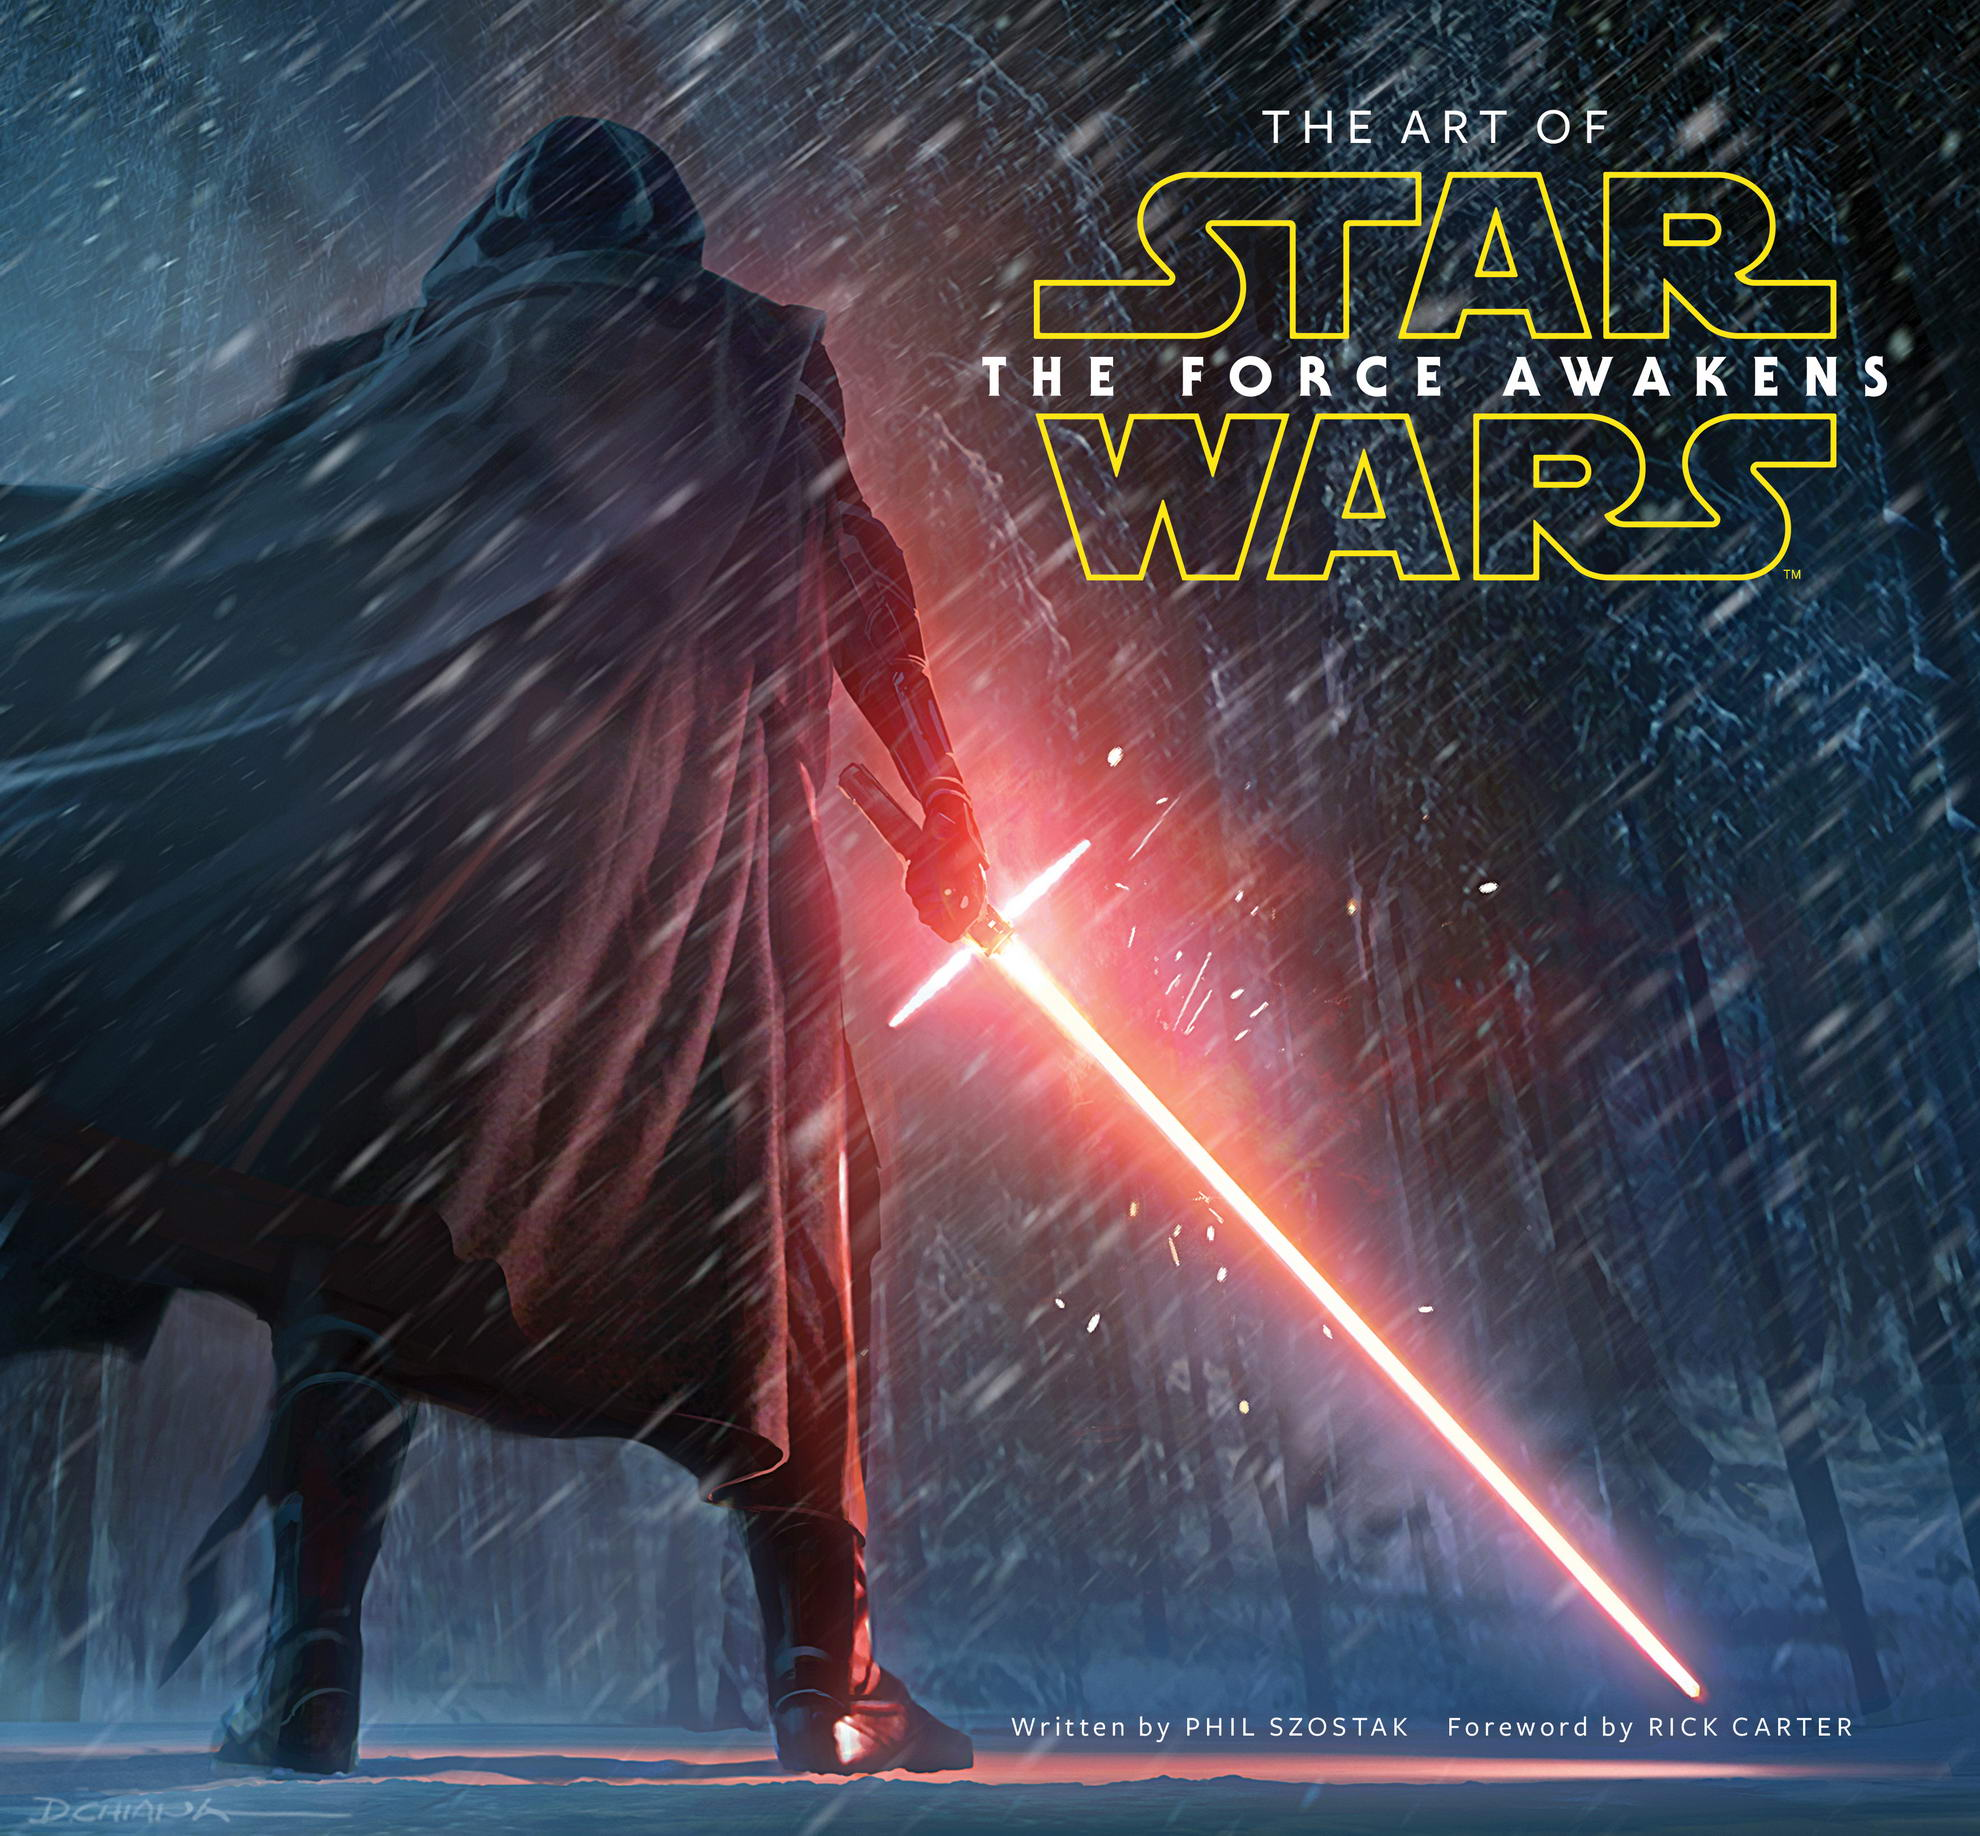 The Art of Star Wars The Force Awakens